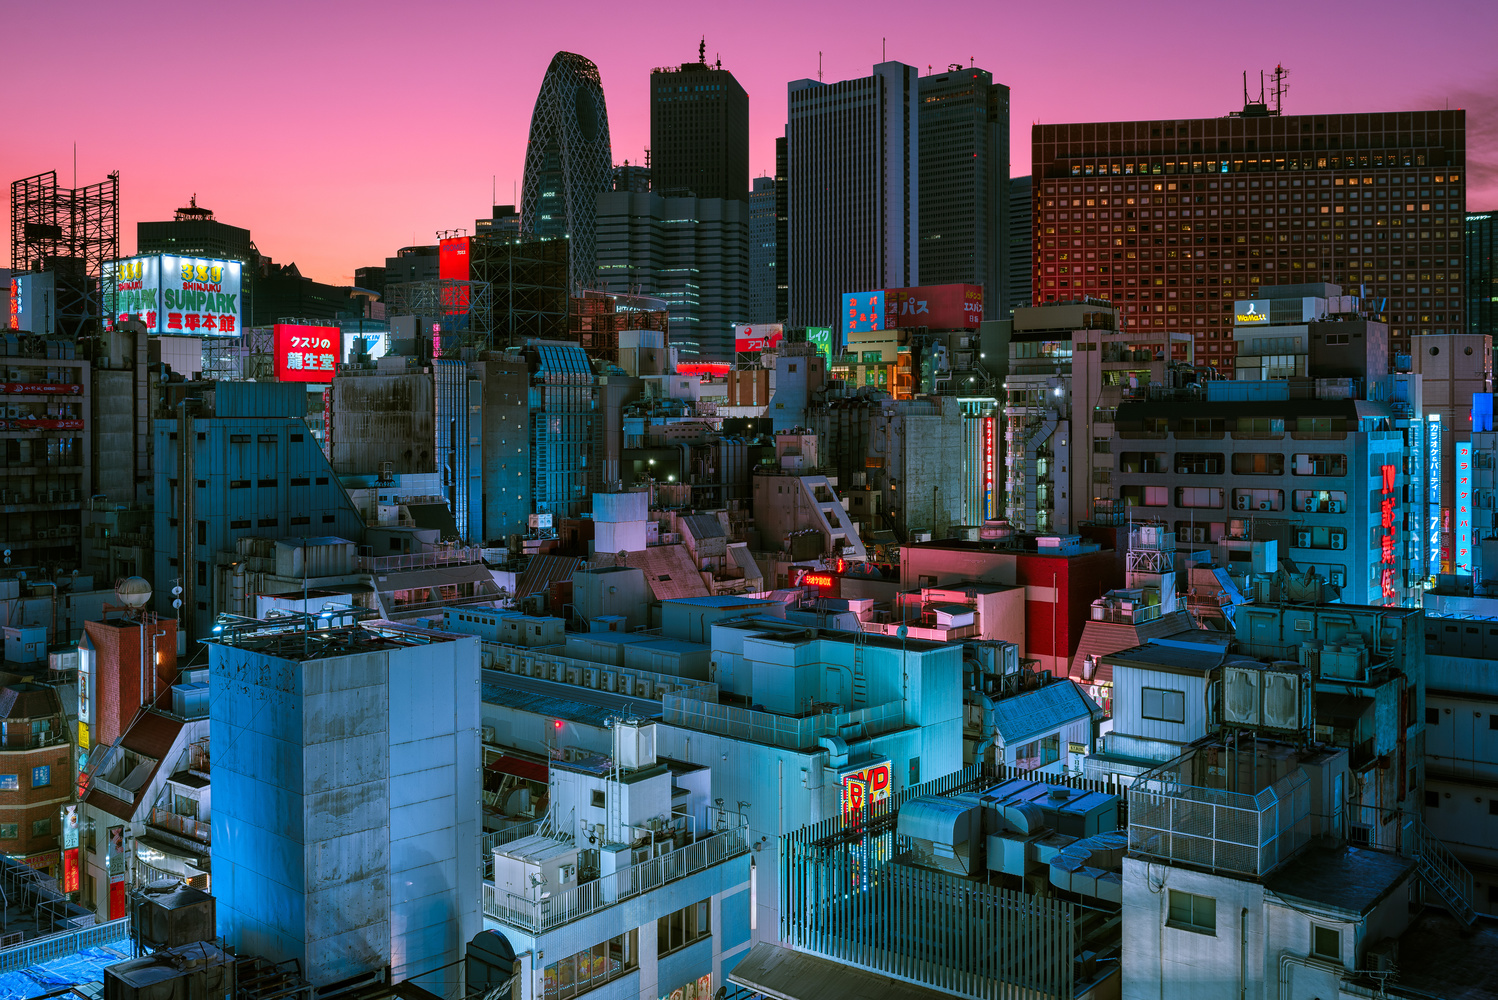 Twilight in Kabukicho by Peter Stewart